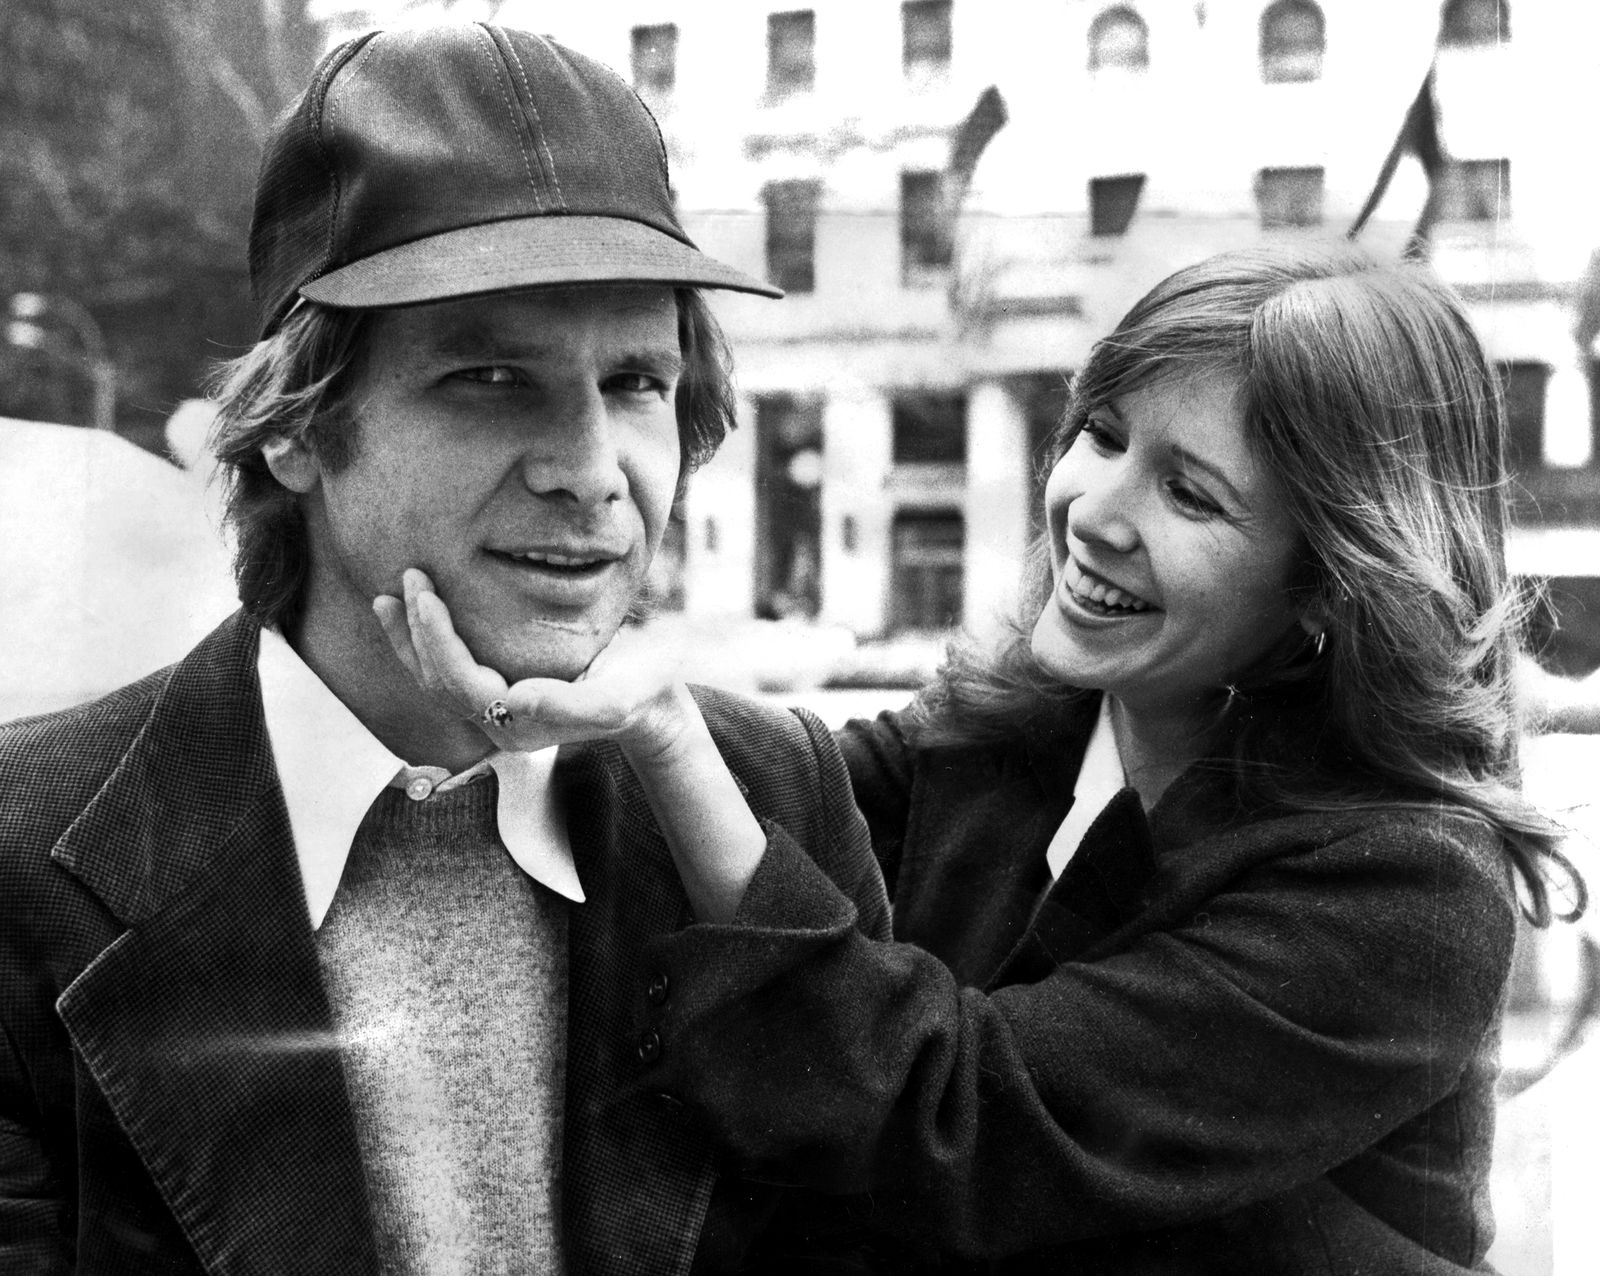 Carrie Fisher's last Harrison Ford story isn't romantic, it's tragic - The Verge